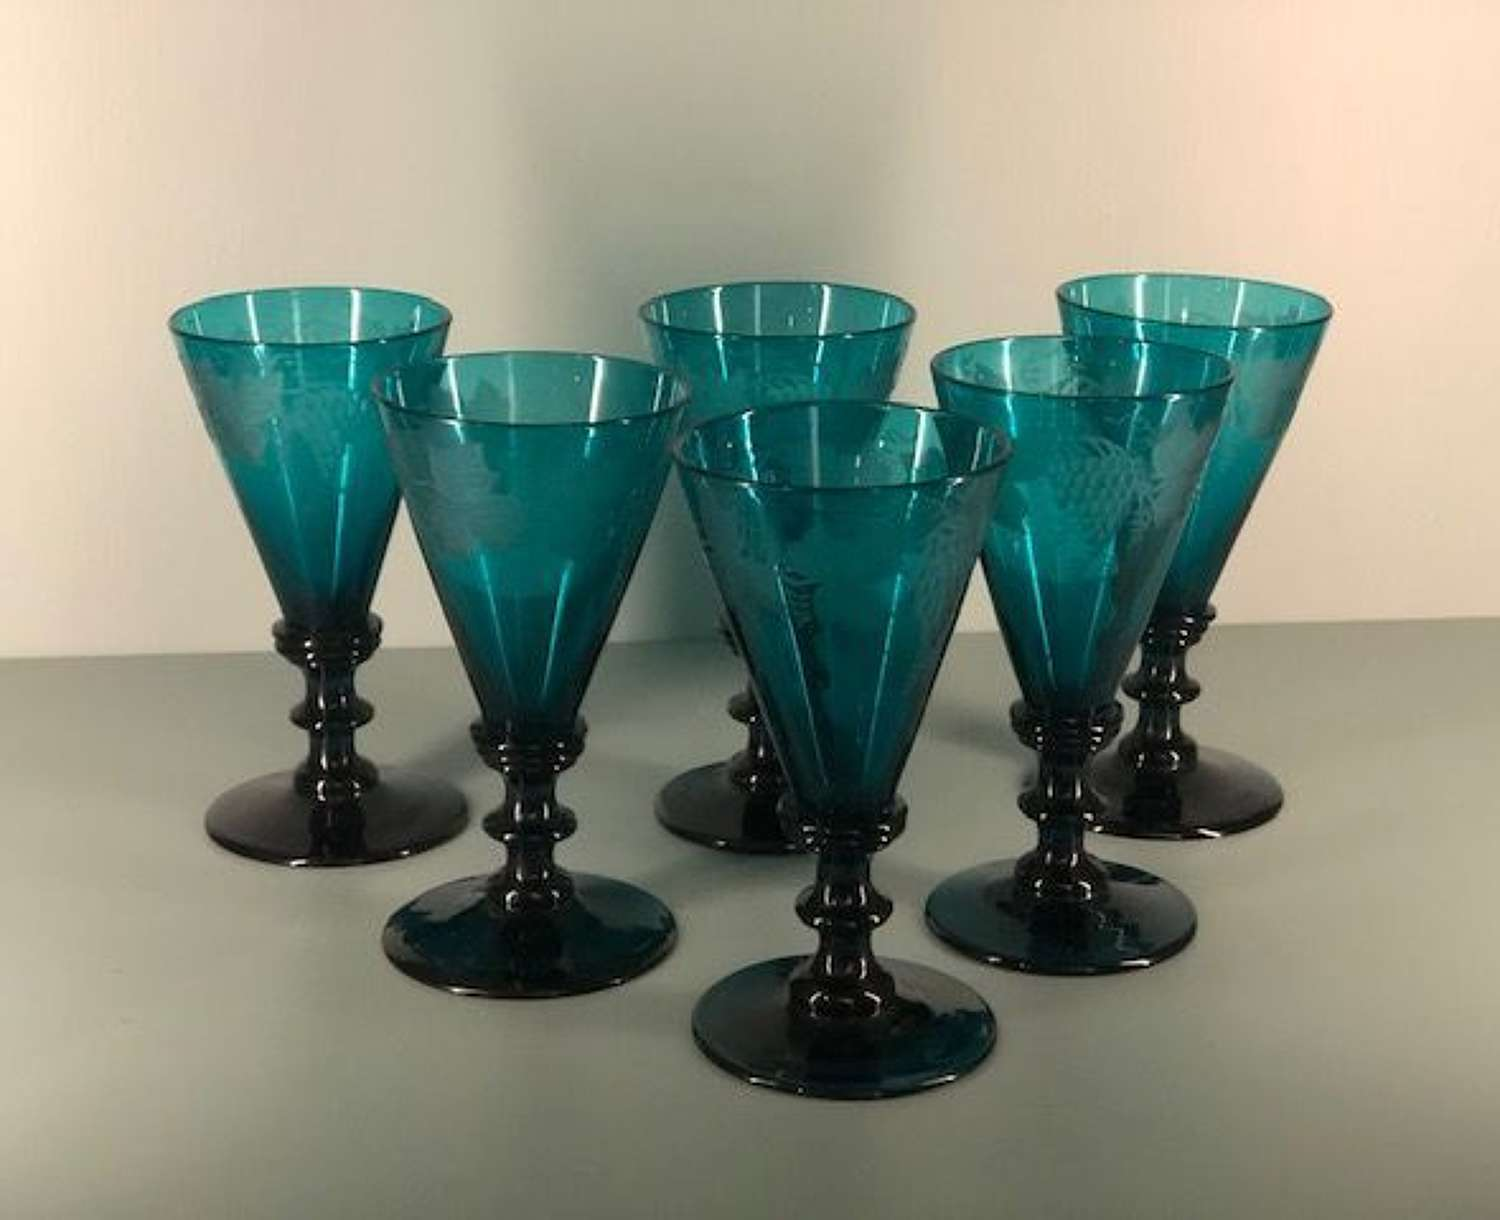 Set of 6 teal green Georgian wine glasses with engraved grape motifs